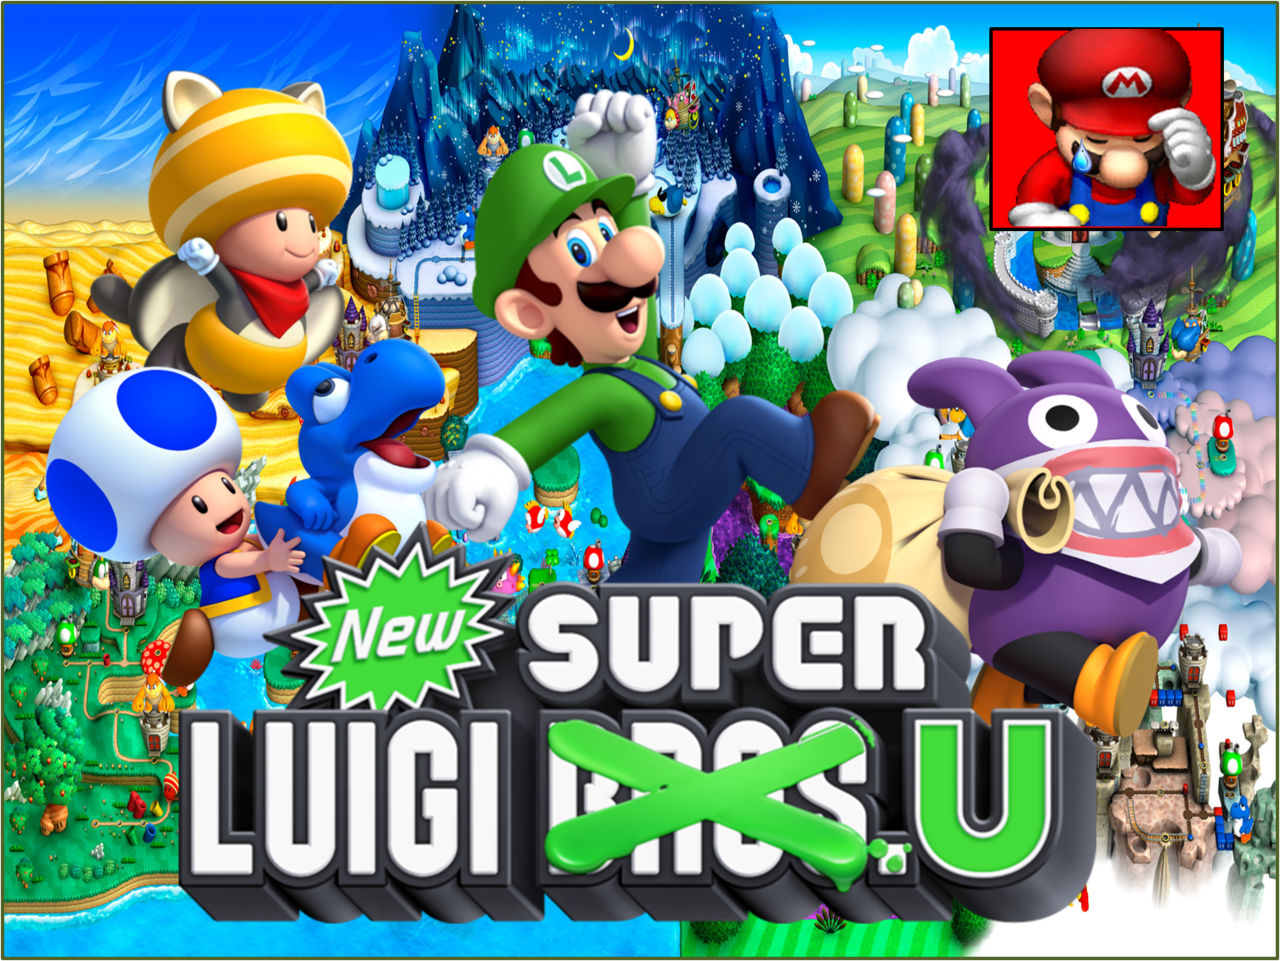 réserver New Super Luigi U